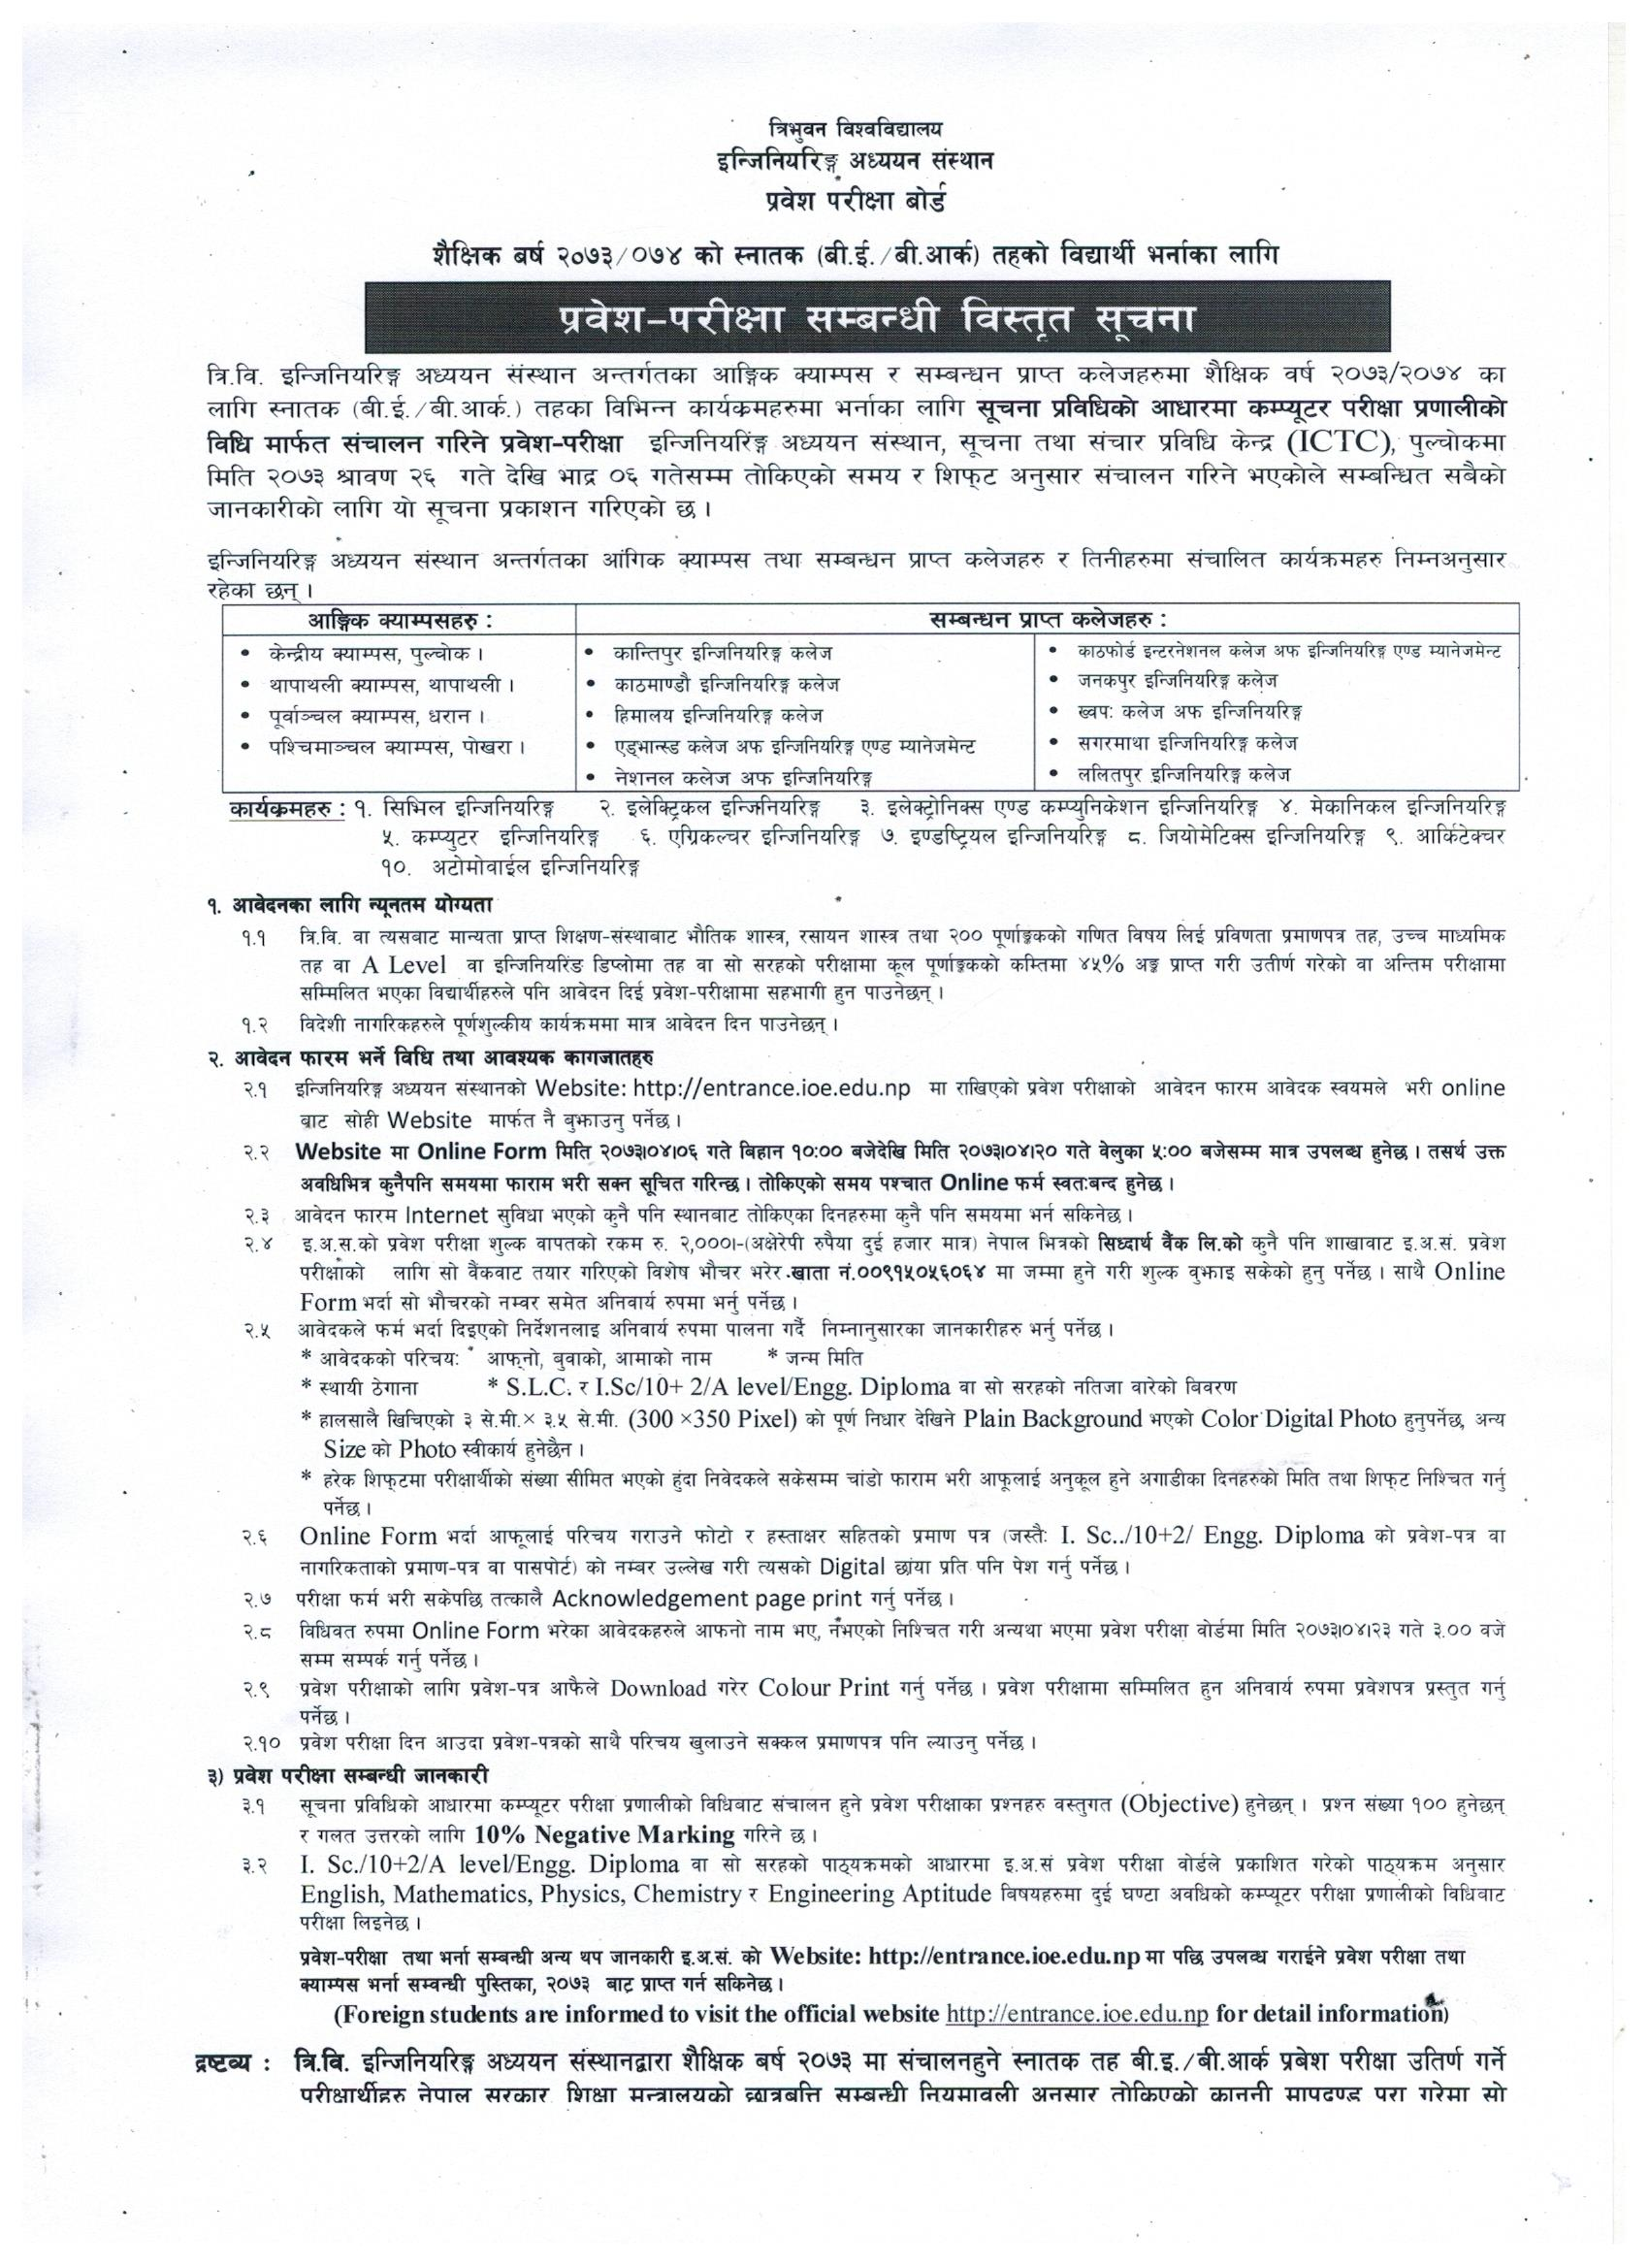 Detail Notice of IOE for IOE Entrance Examination 2073